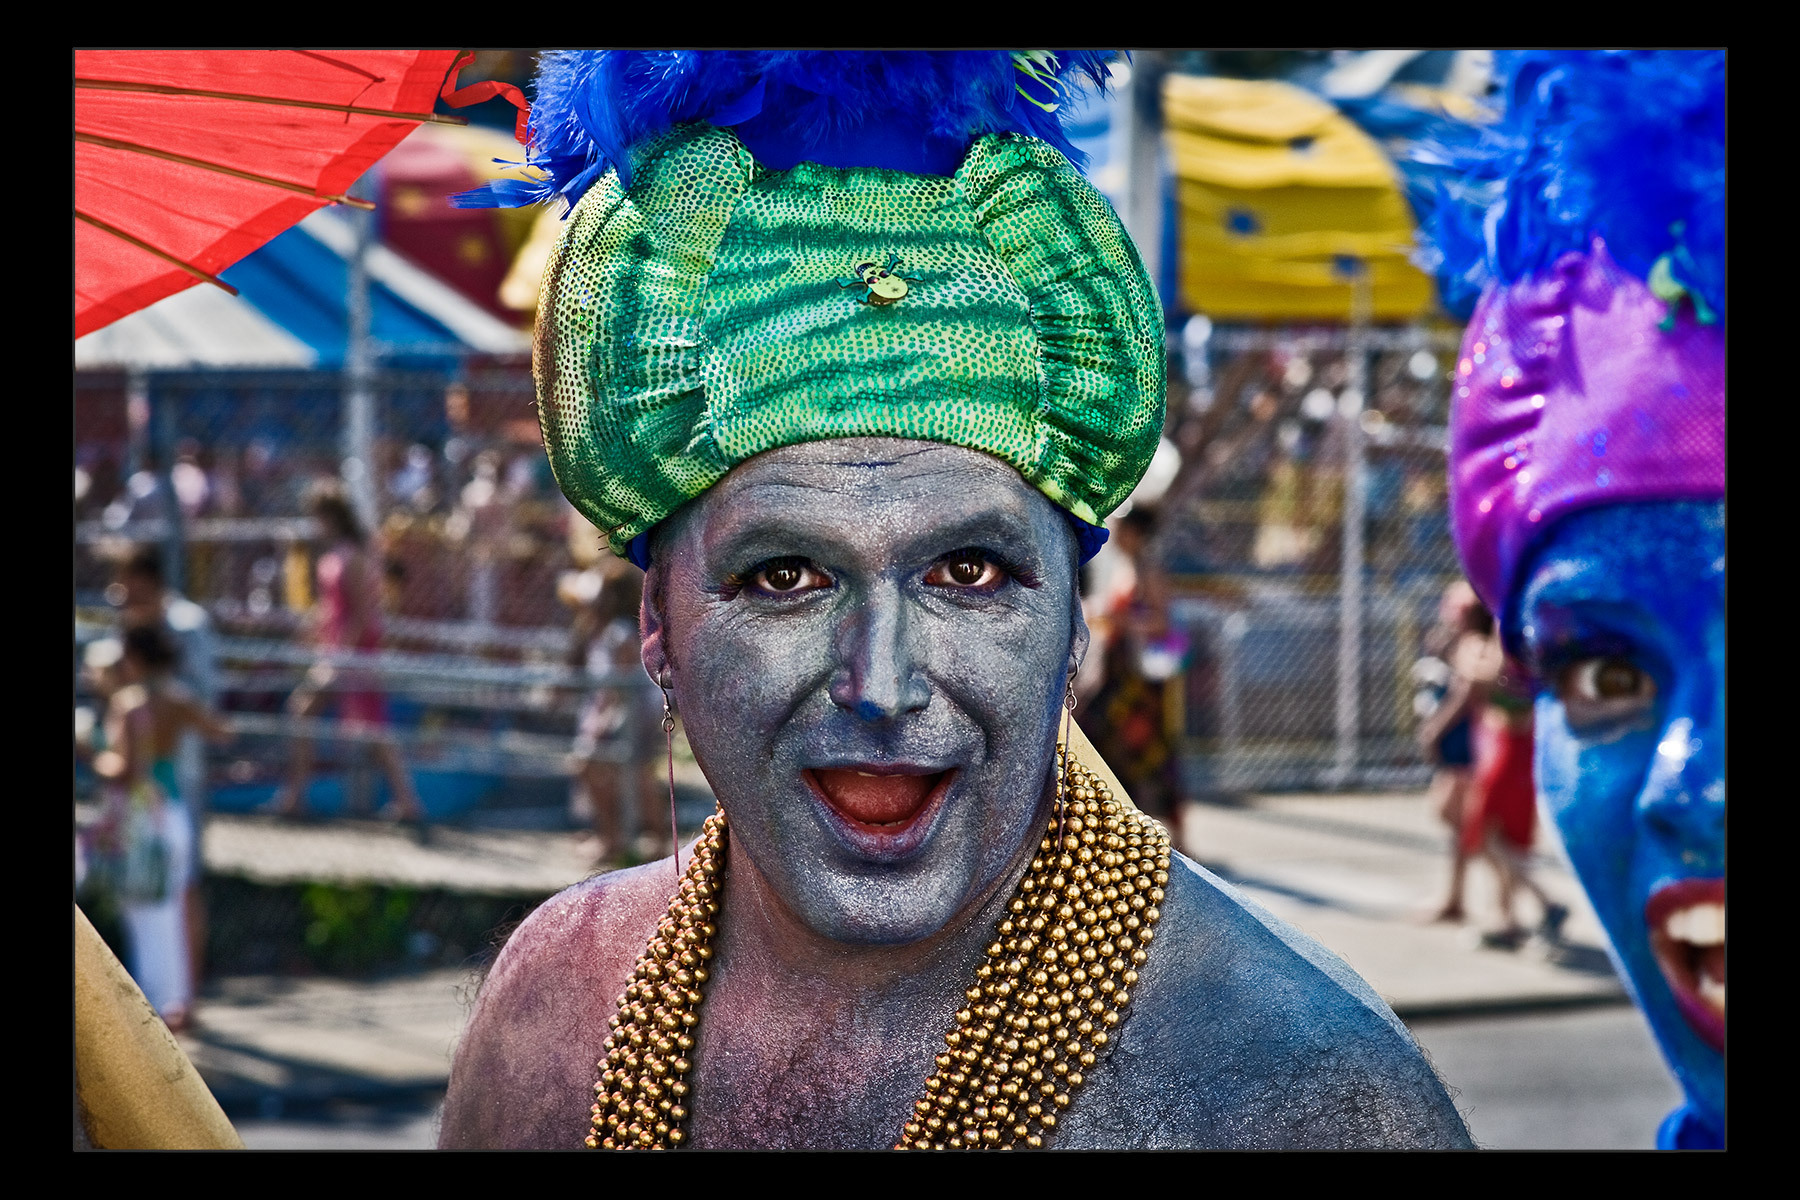 merman, Coney Island